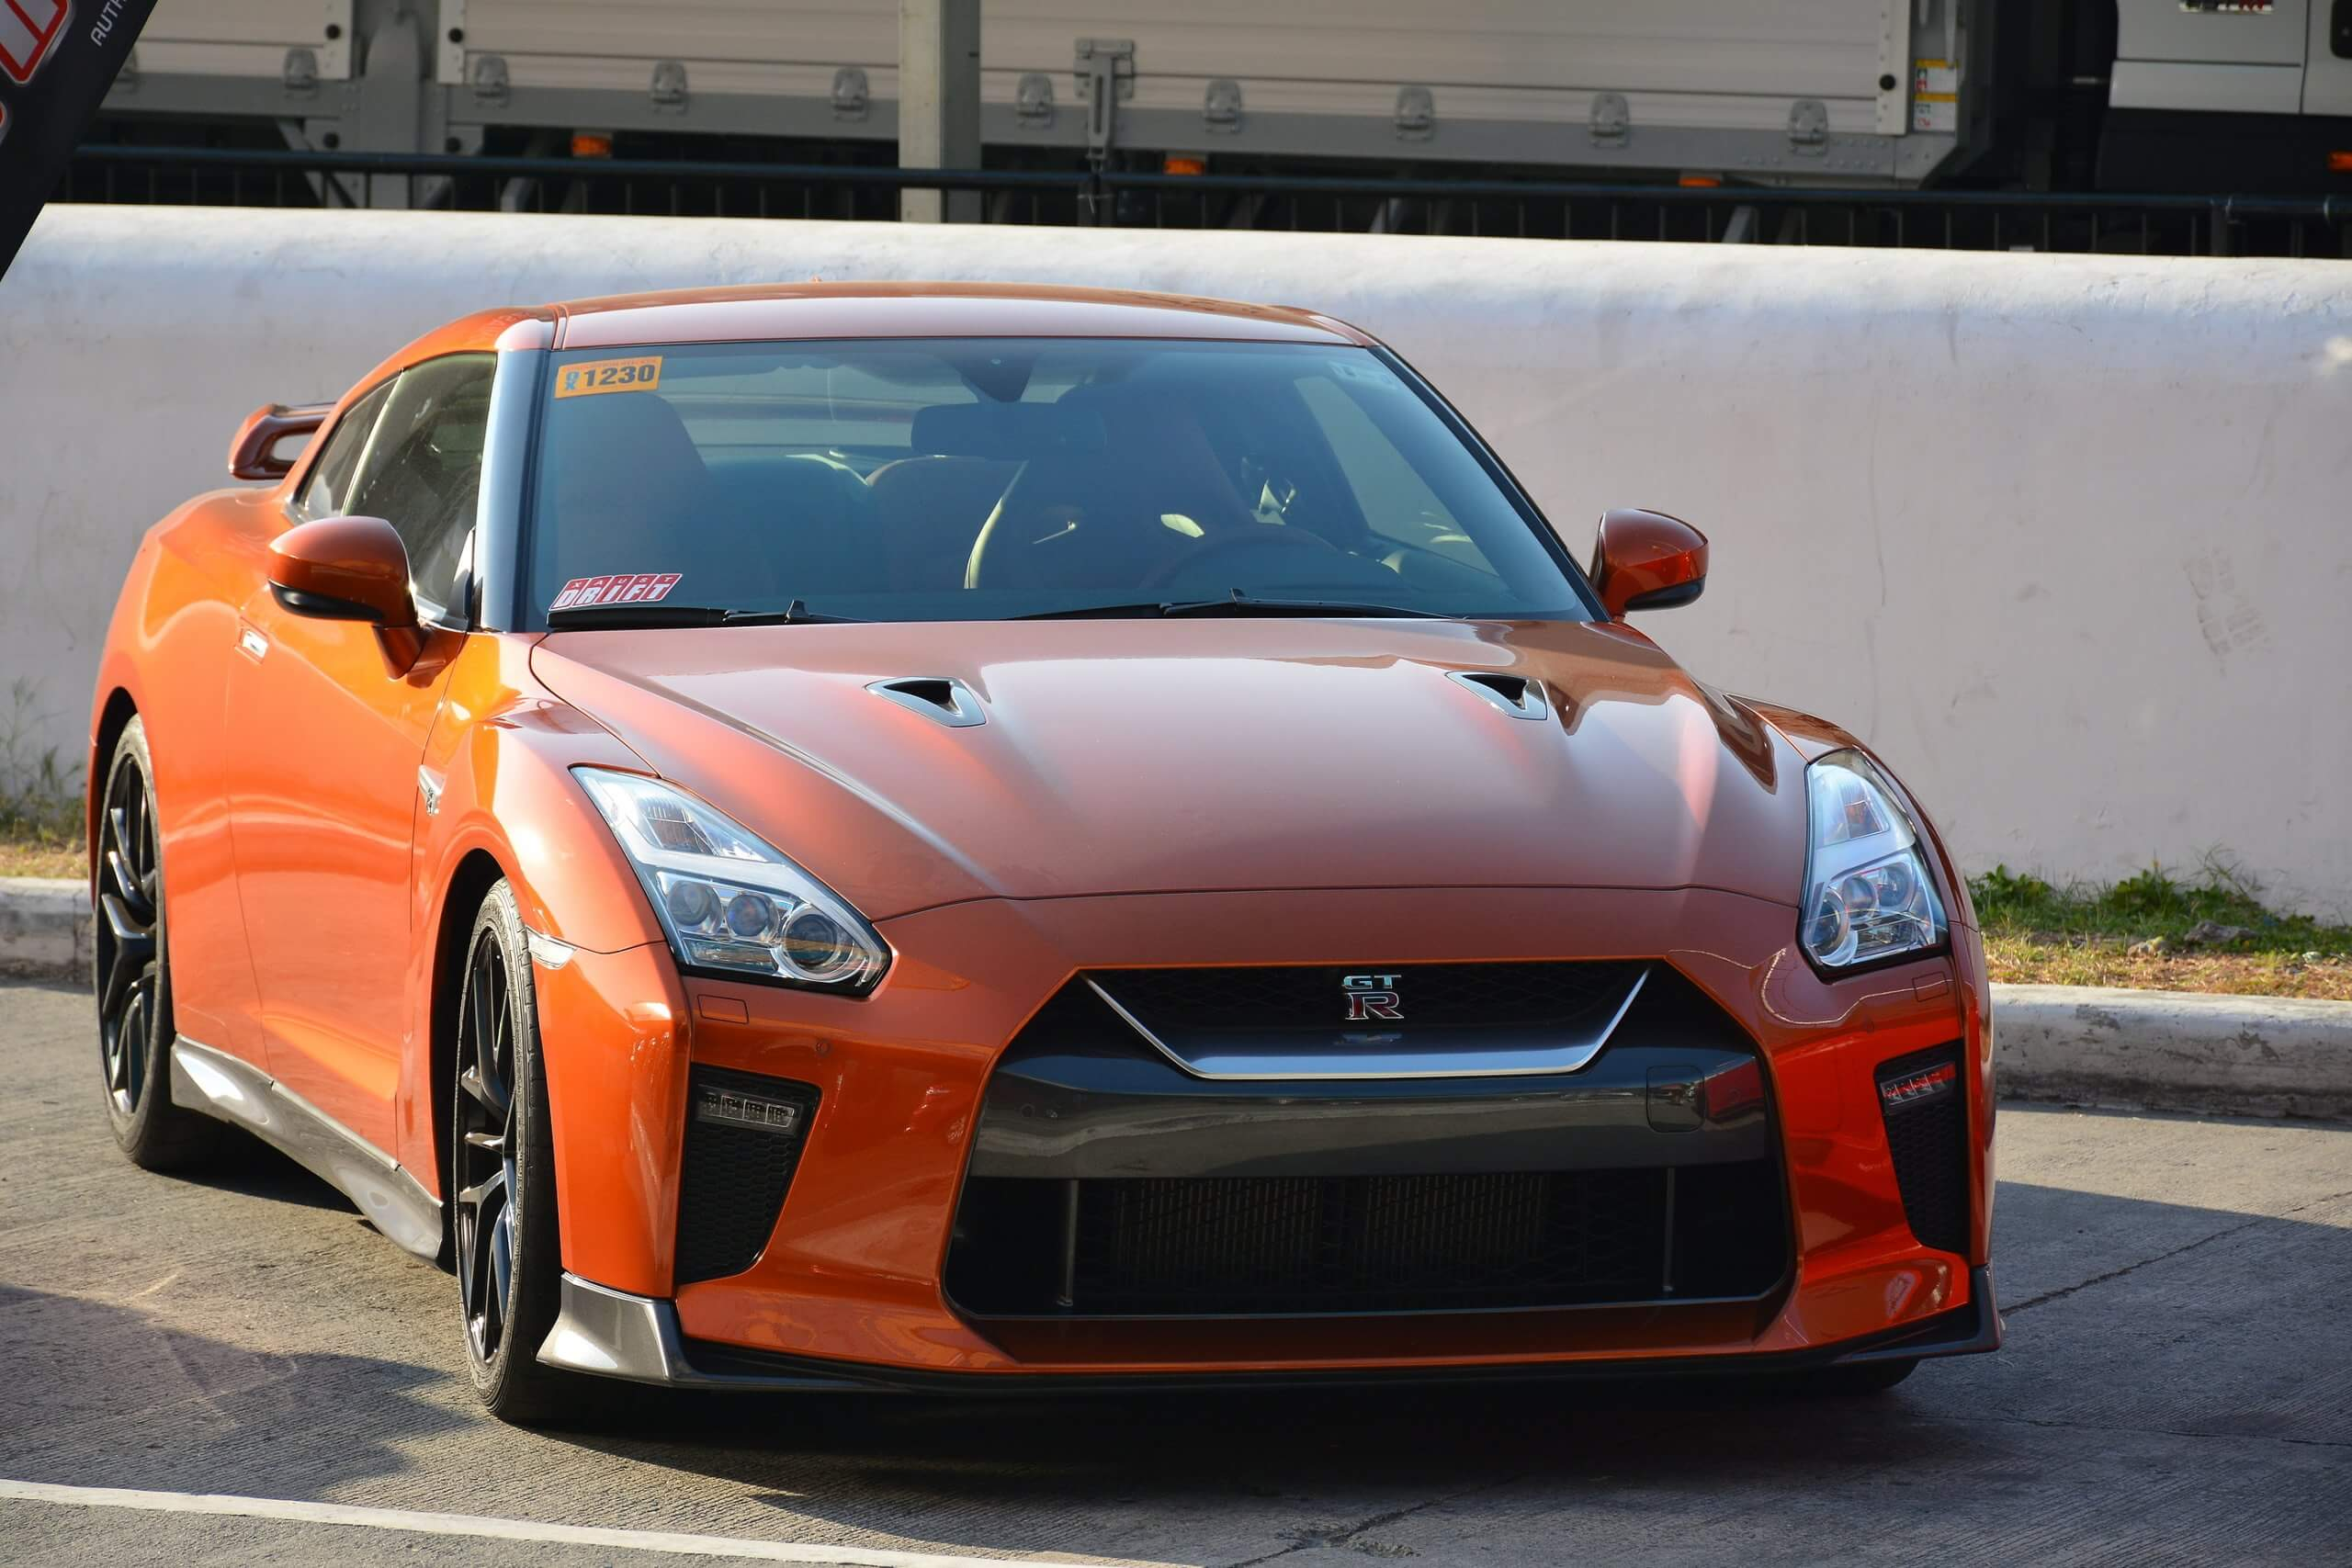 orange Nissan GTR parked in a car park on sunny day